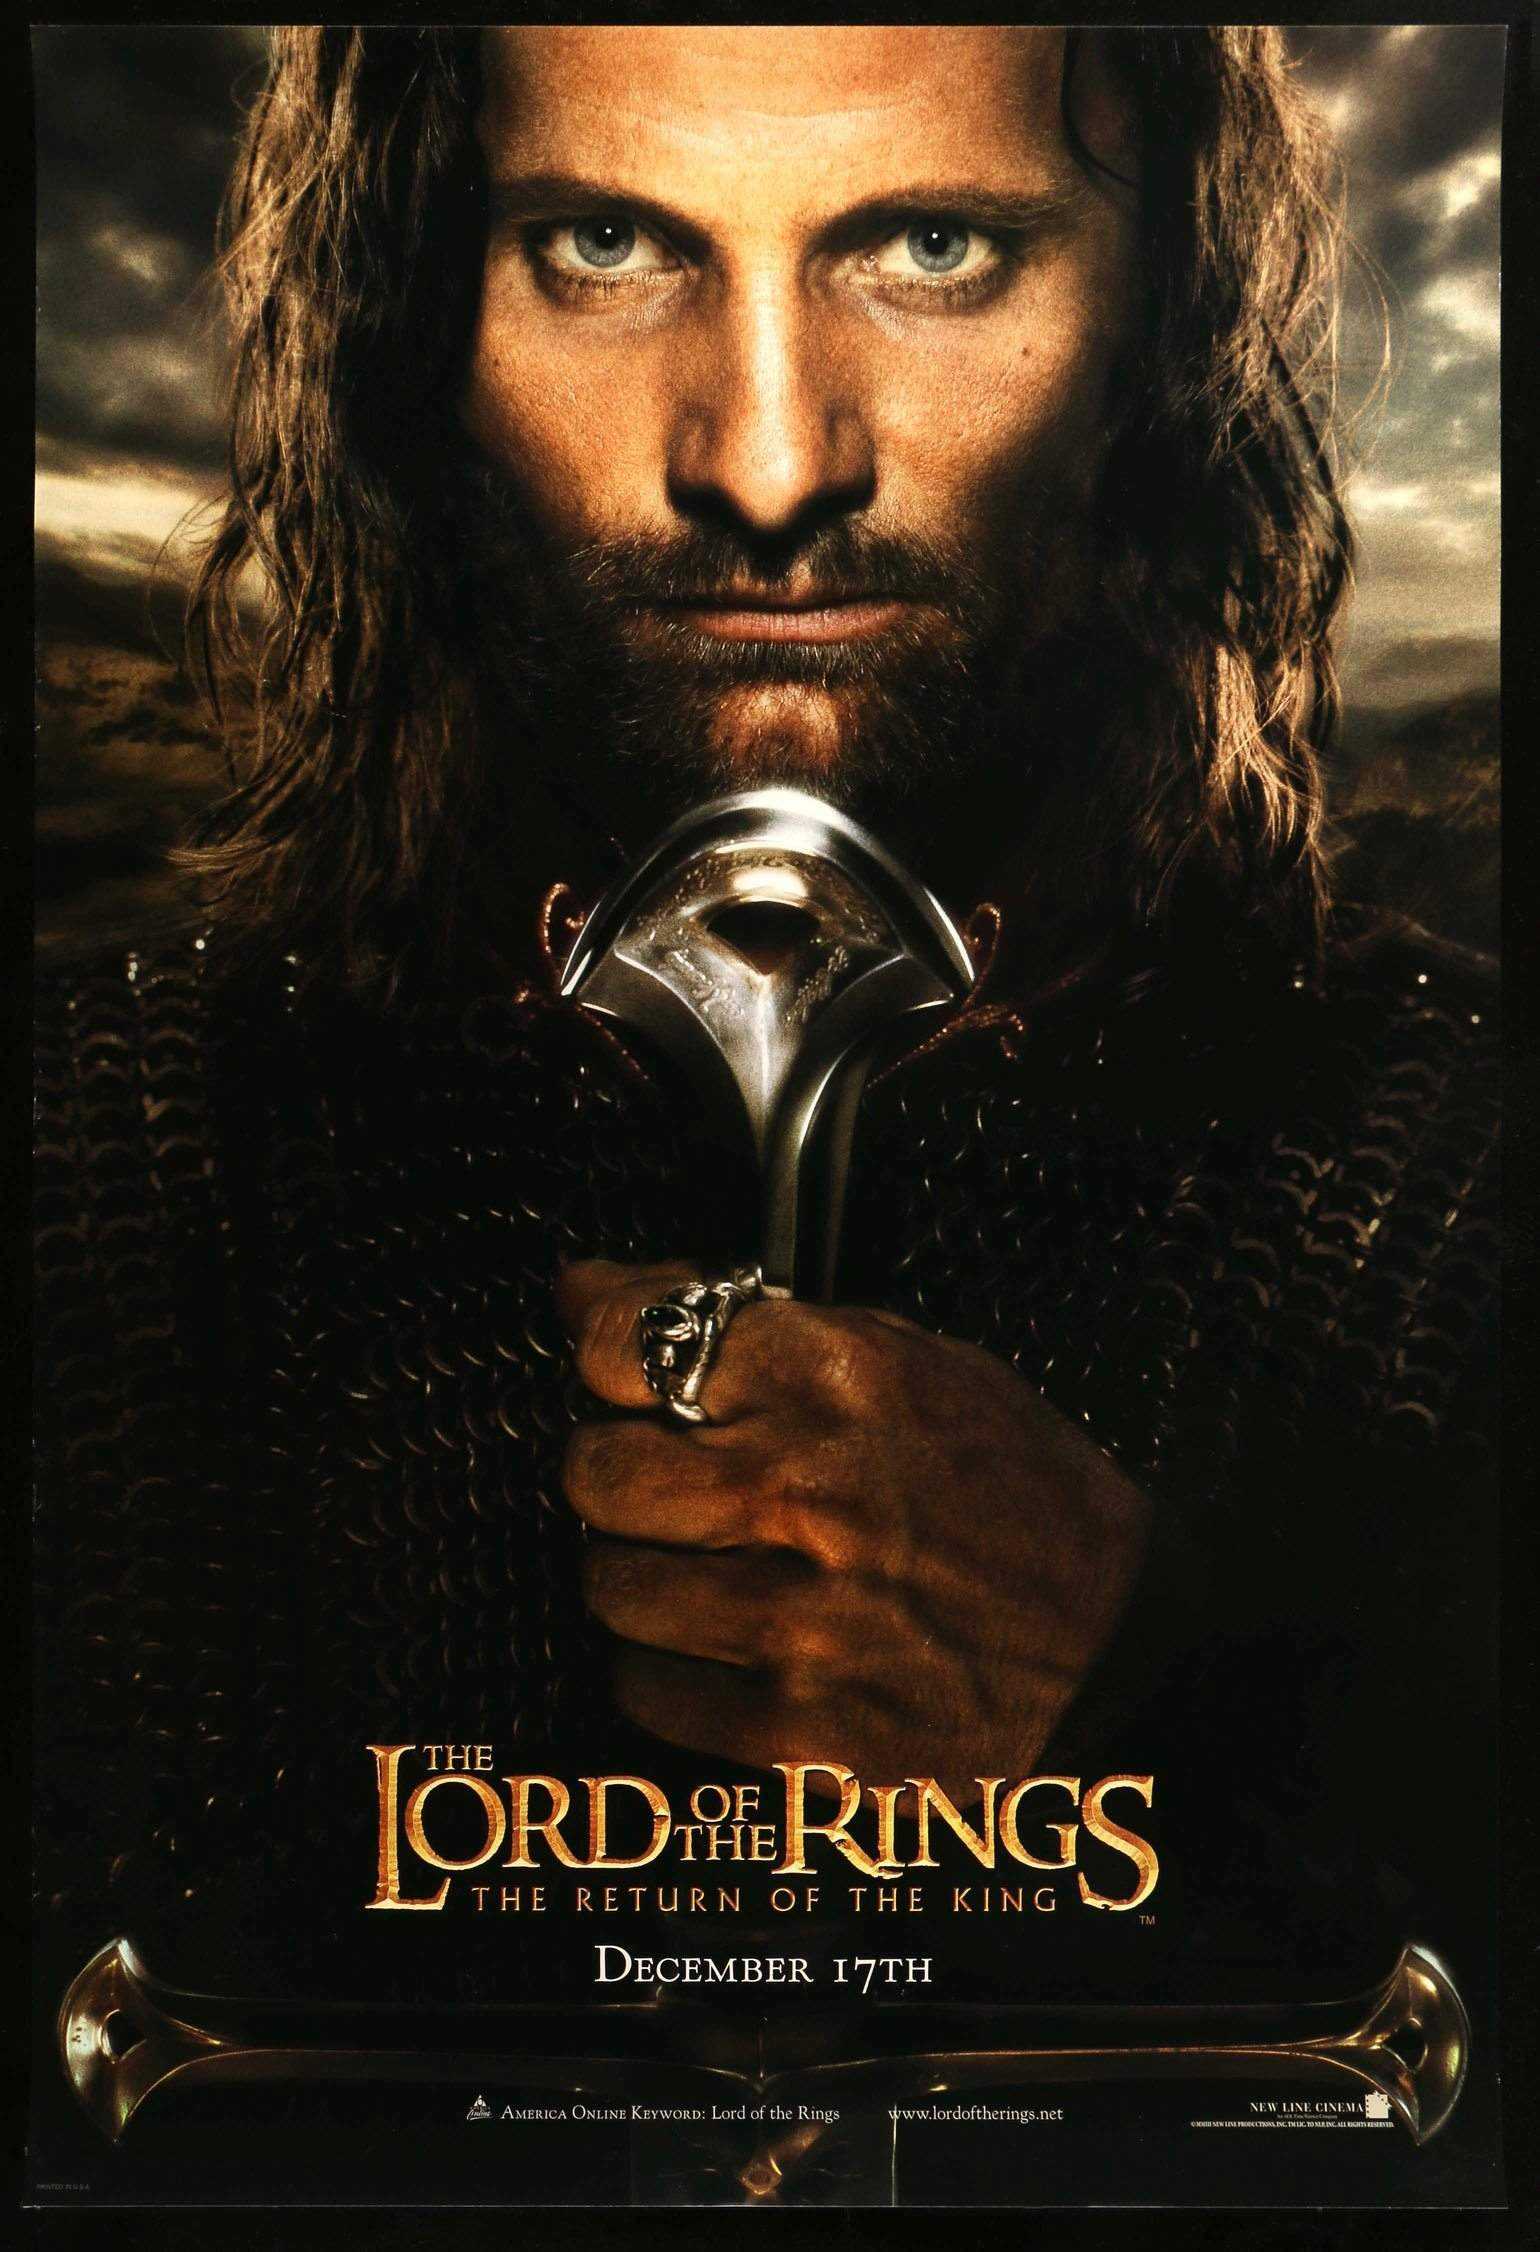 the lord of the rings poster part 3 2003 the return of the king high quality HD printable wallpapers aragorn